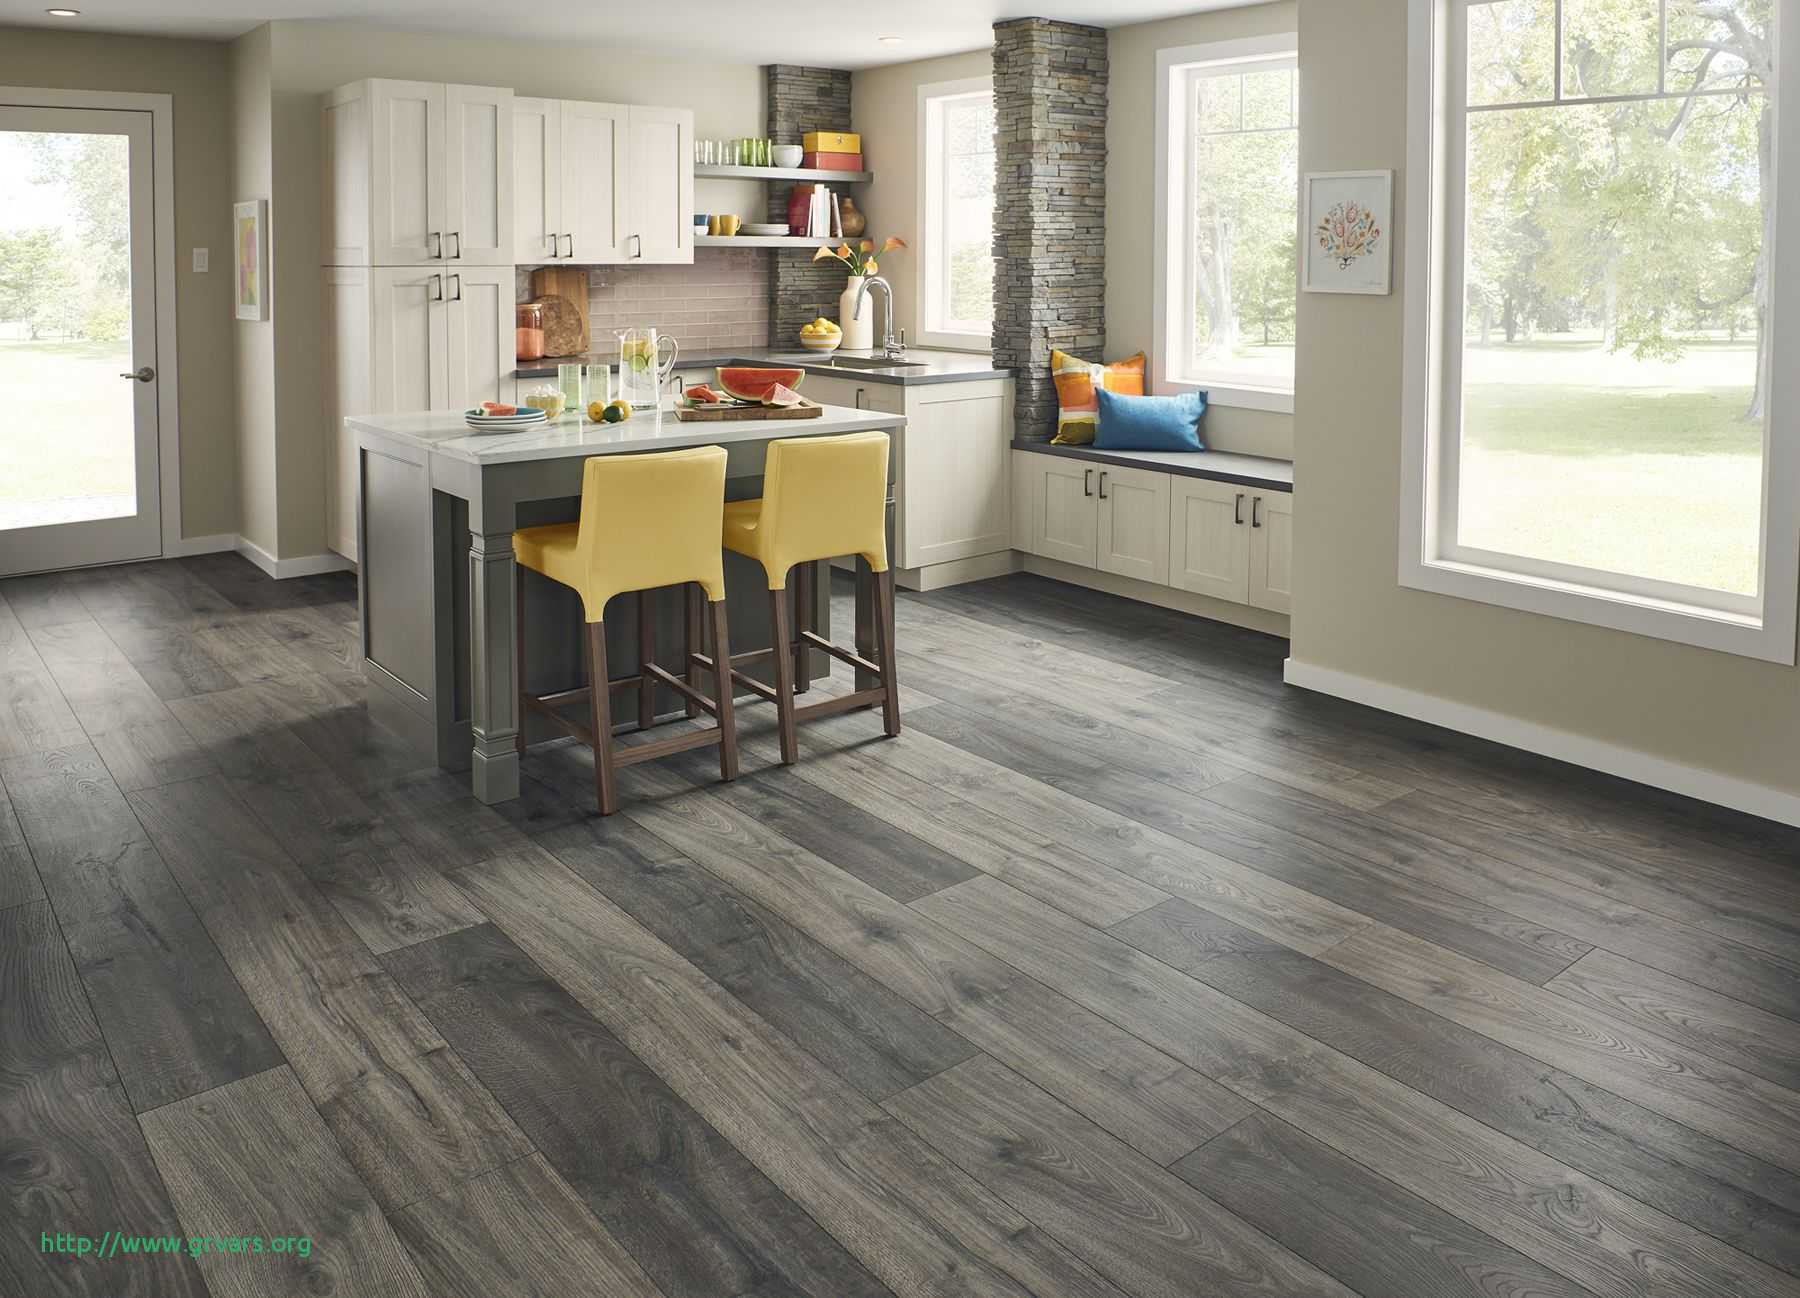 laminate hardwood flooring cost per square foot of 21 frais laminate flooring installation labor cost per square foot with regard to plank flooring walls laminate flooring installation labor cost per square foot inspirant let your imagination roll with the smoky